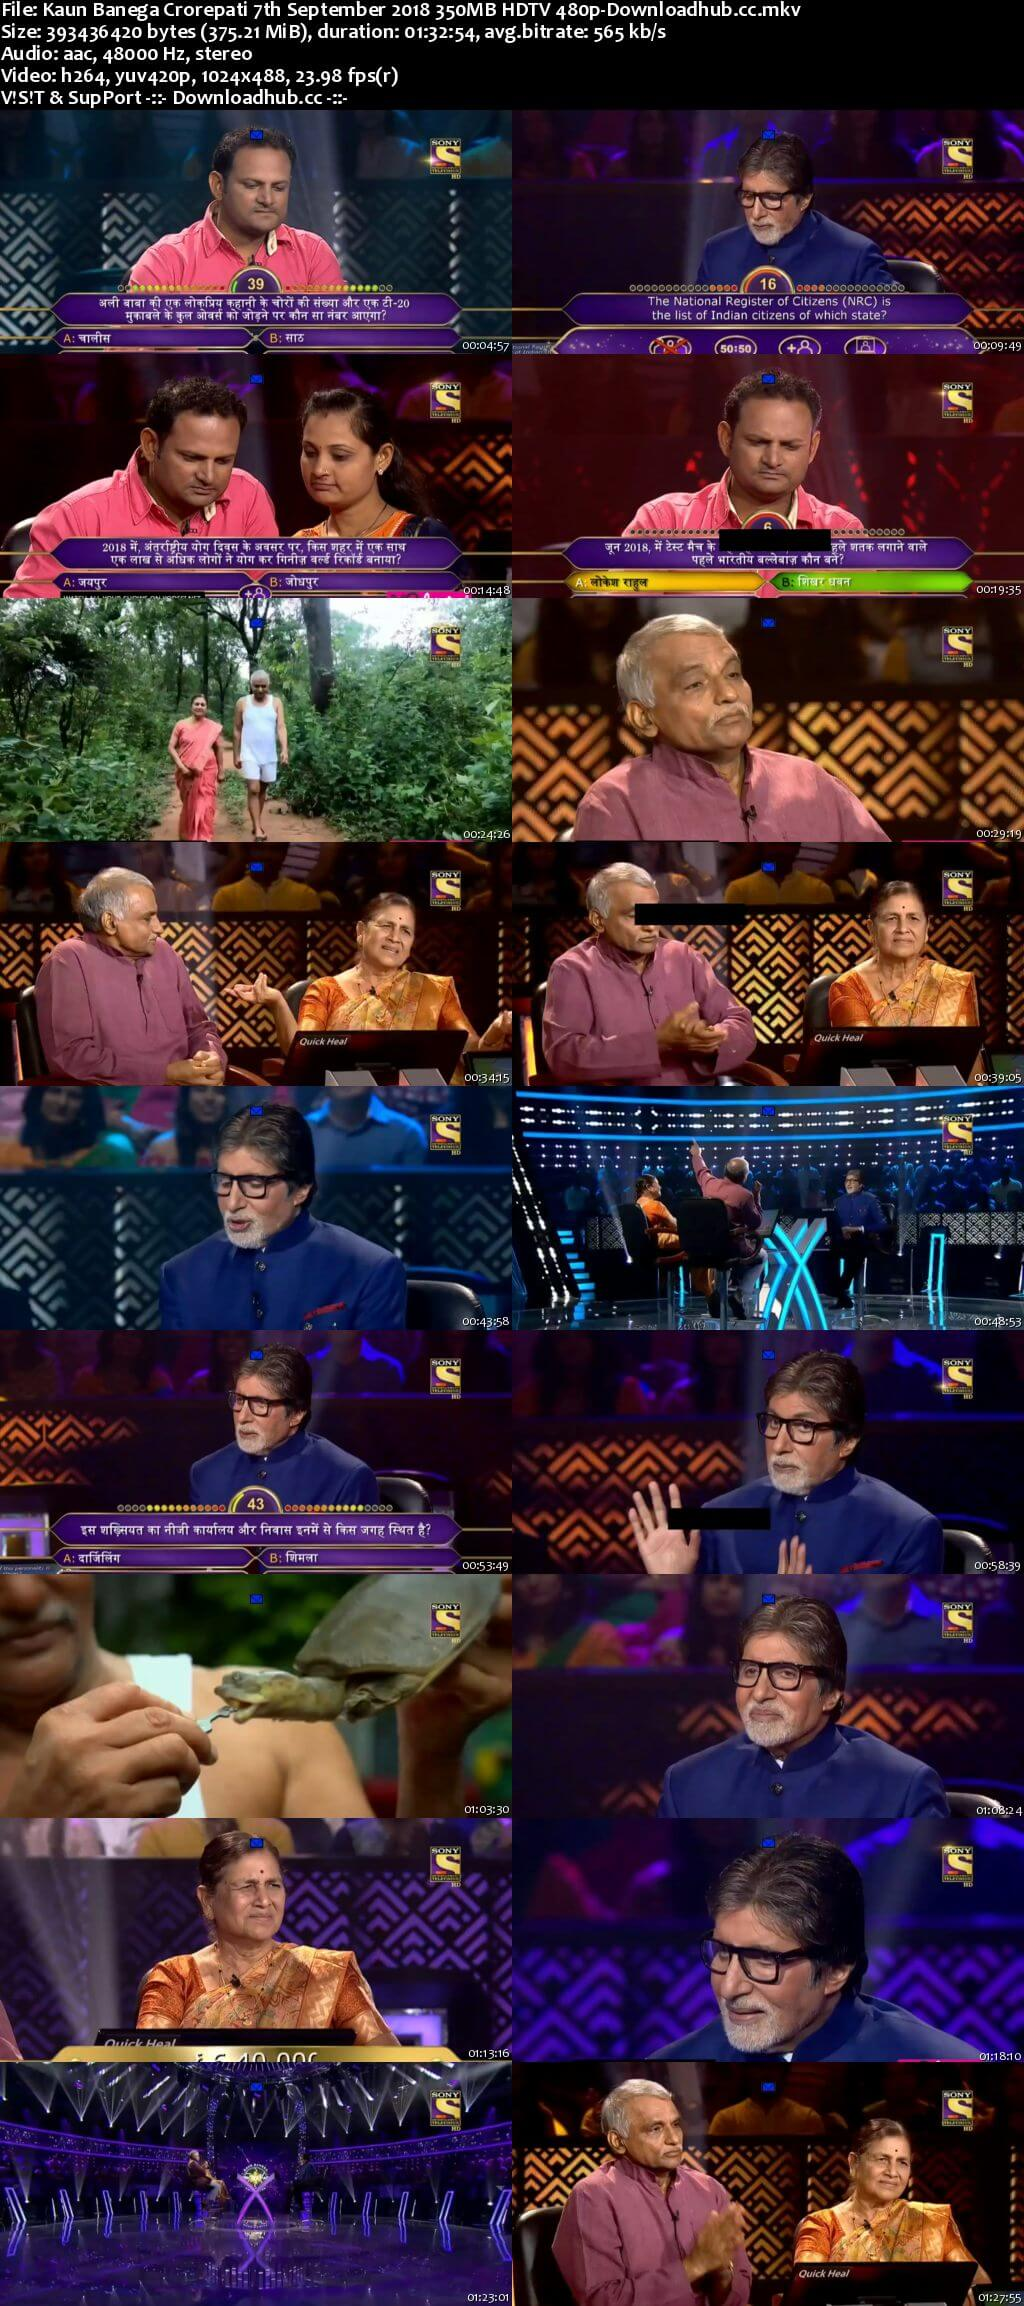 Kaun Banega Crorepati 7th September 2018 350MB HDTV 480p